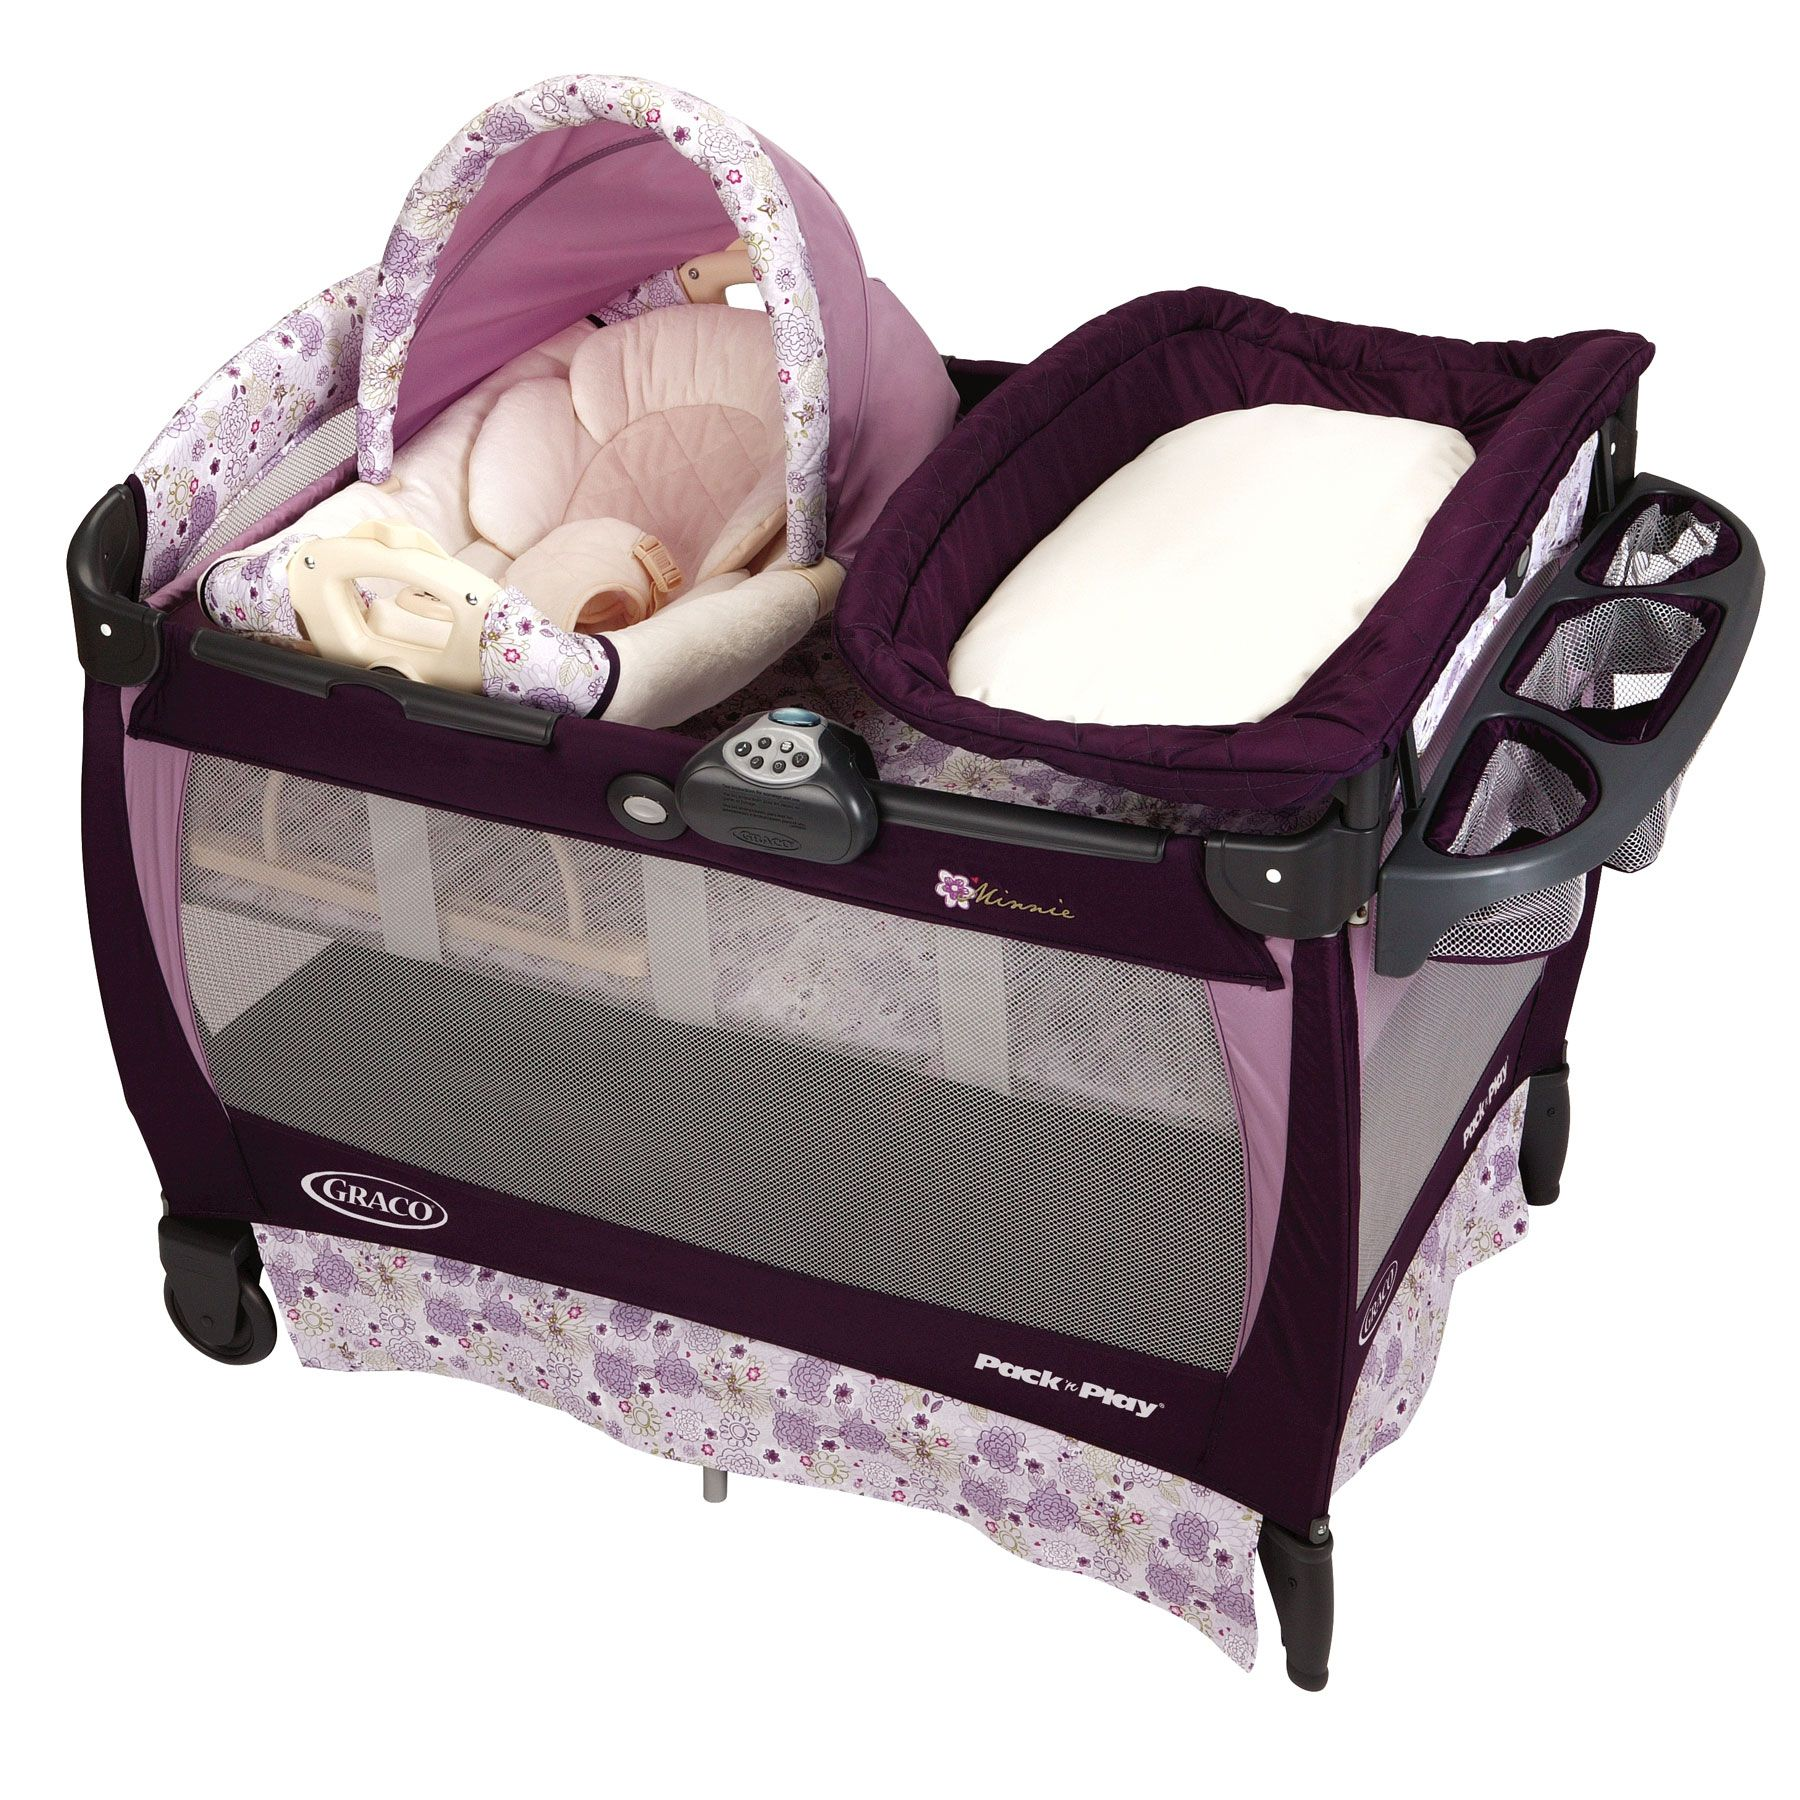 pack n play - bassinet, changing table, and playpen | Baby ...